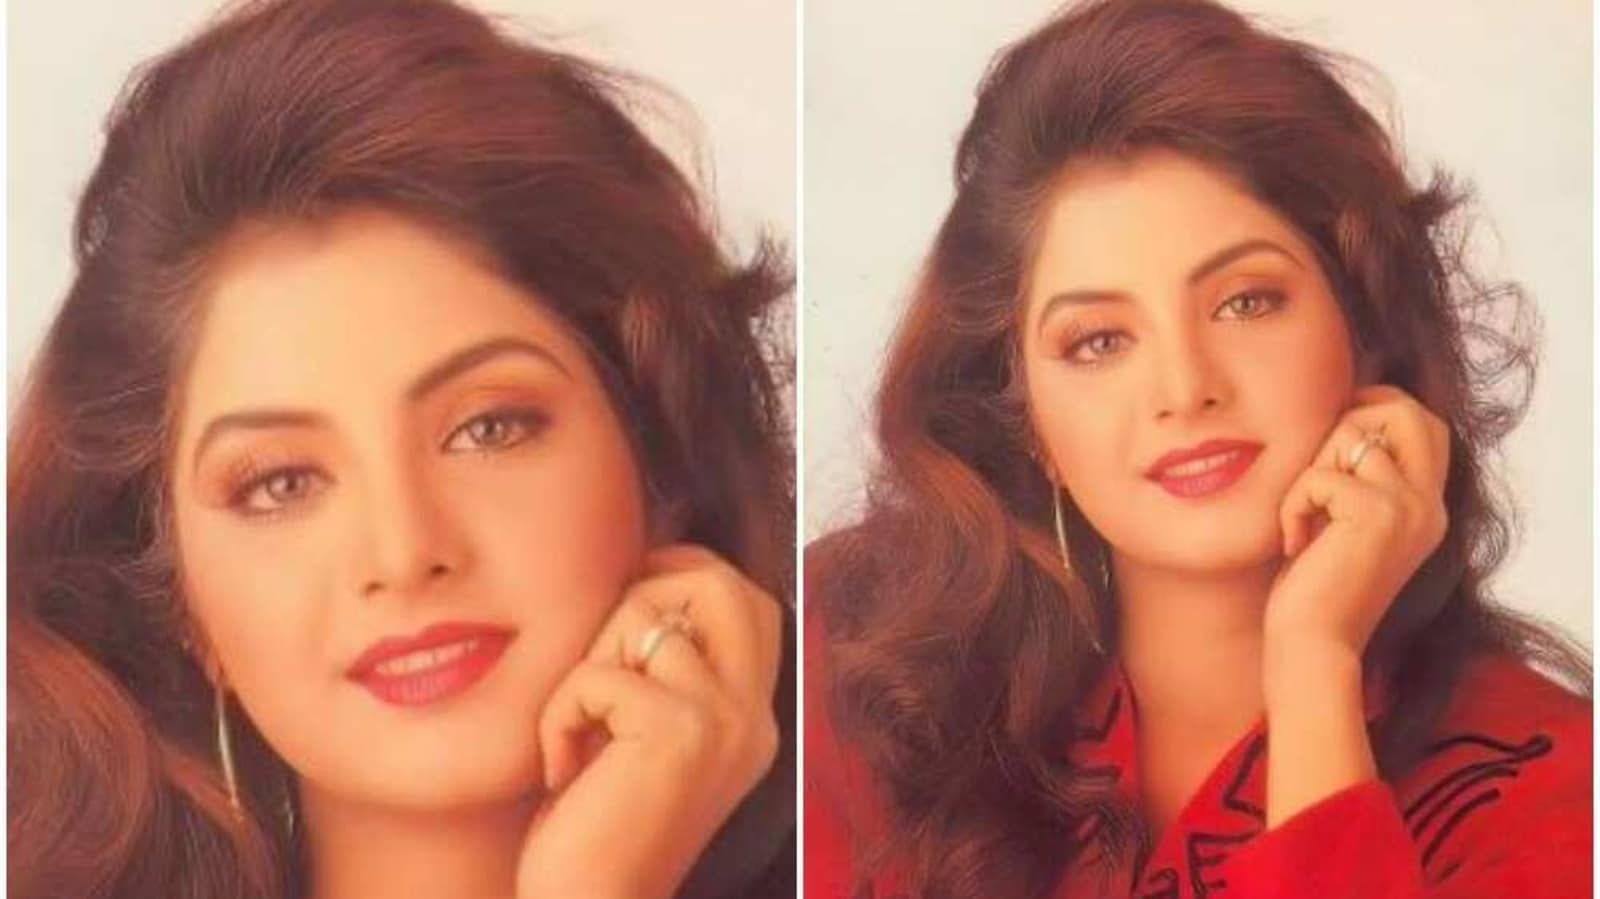 How Divya Bharti, Sajid Nadiadwala managed to keep their marriage a secret from her father for months - Hindustan Times